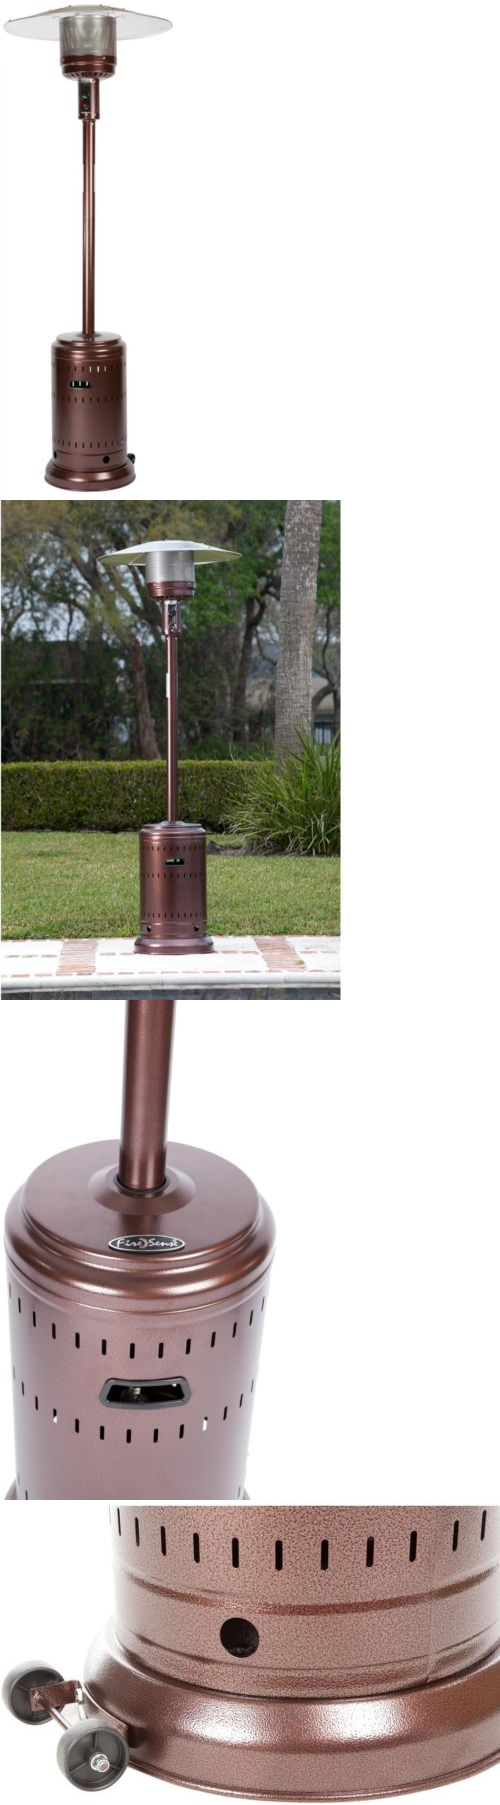 Patio Heaters 106402: Propane Gas Patio Heater Bronze Standing Tower Tall  Warmer Outdoor Rolling Tank